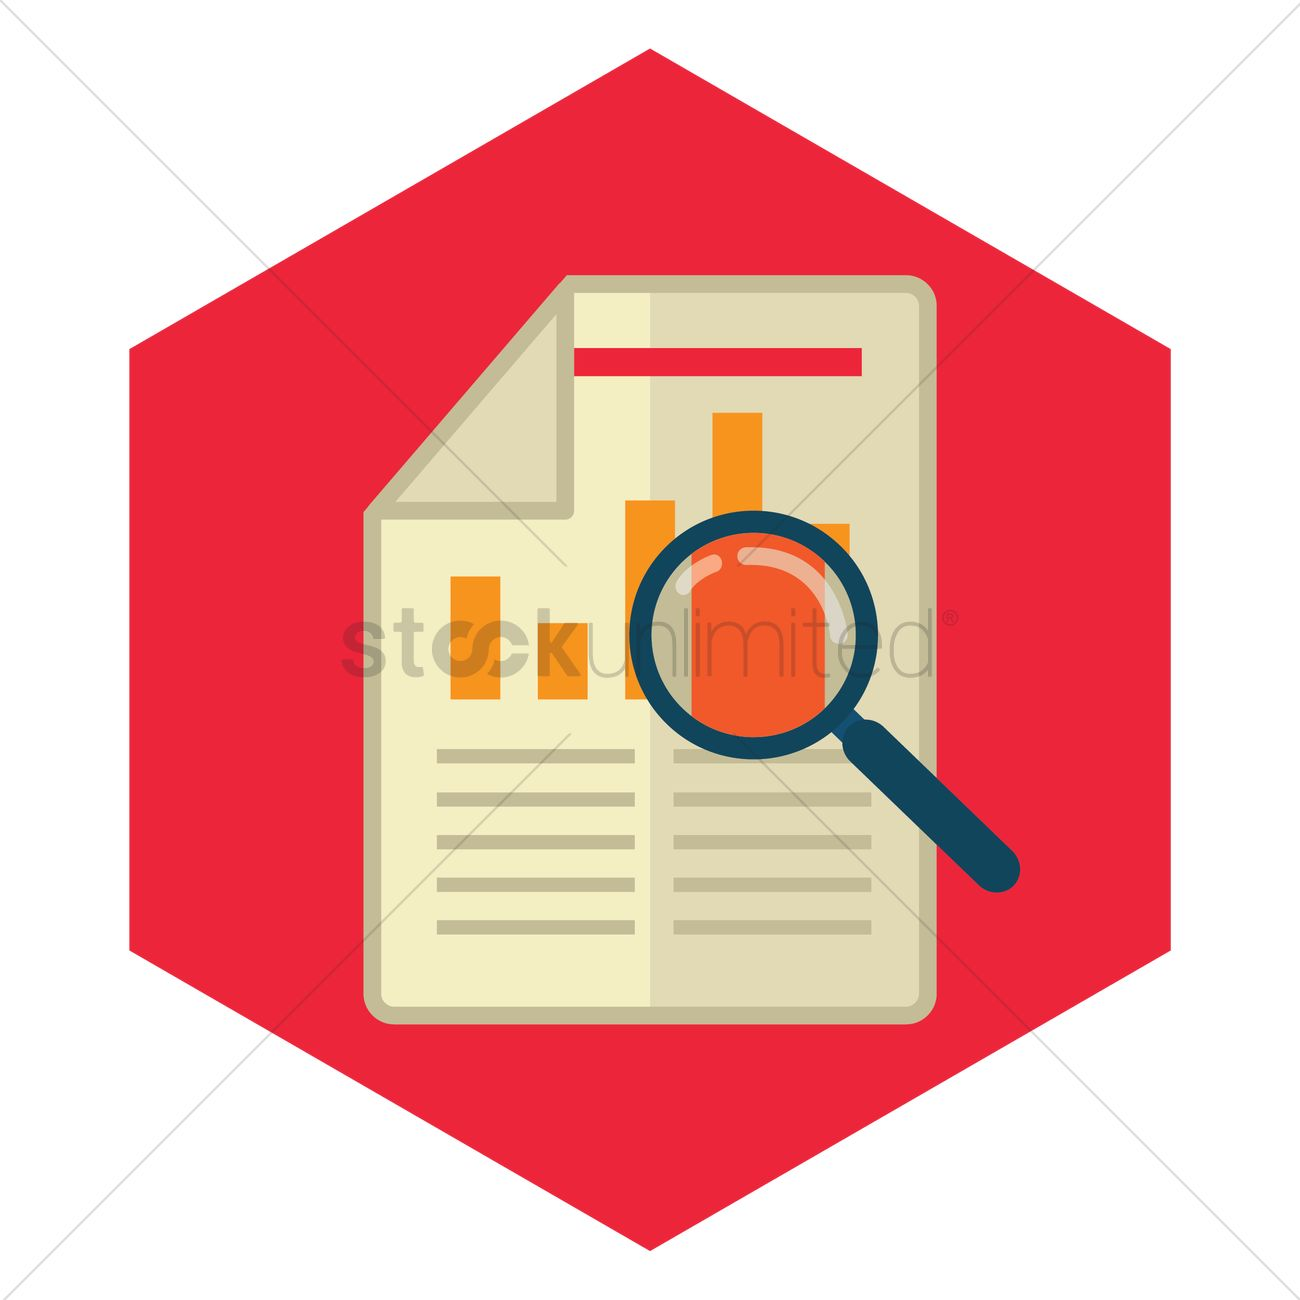 Cliparts free download best. Statistics clipart statistical report